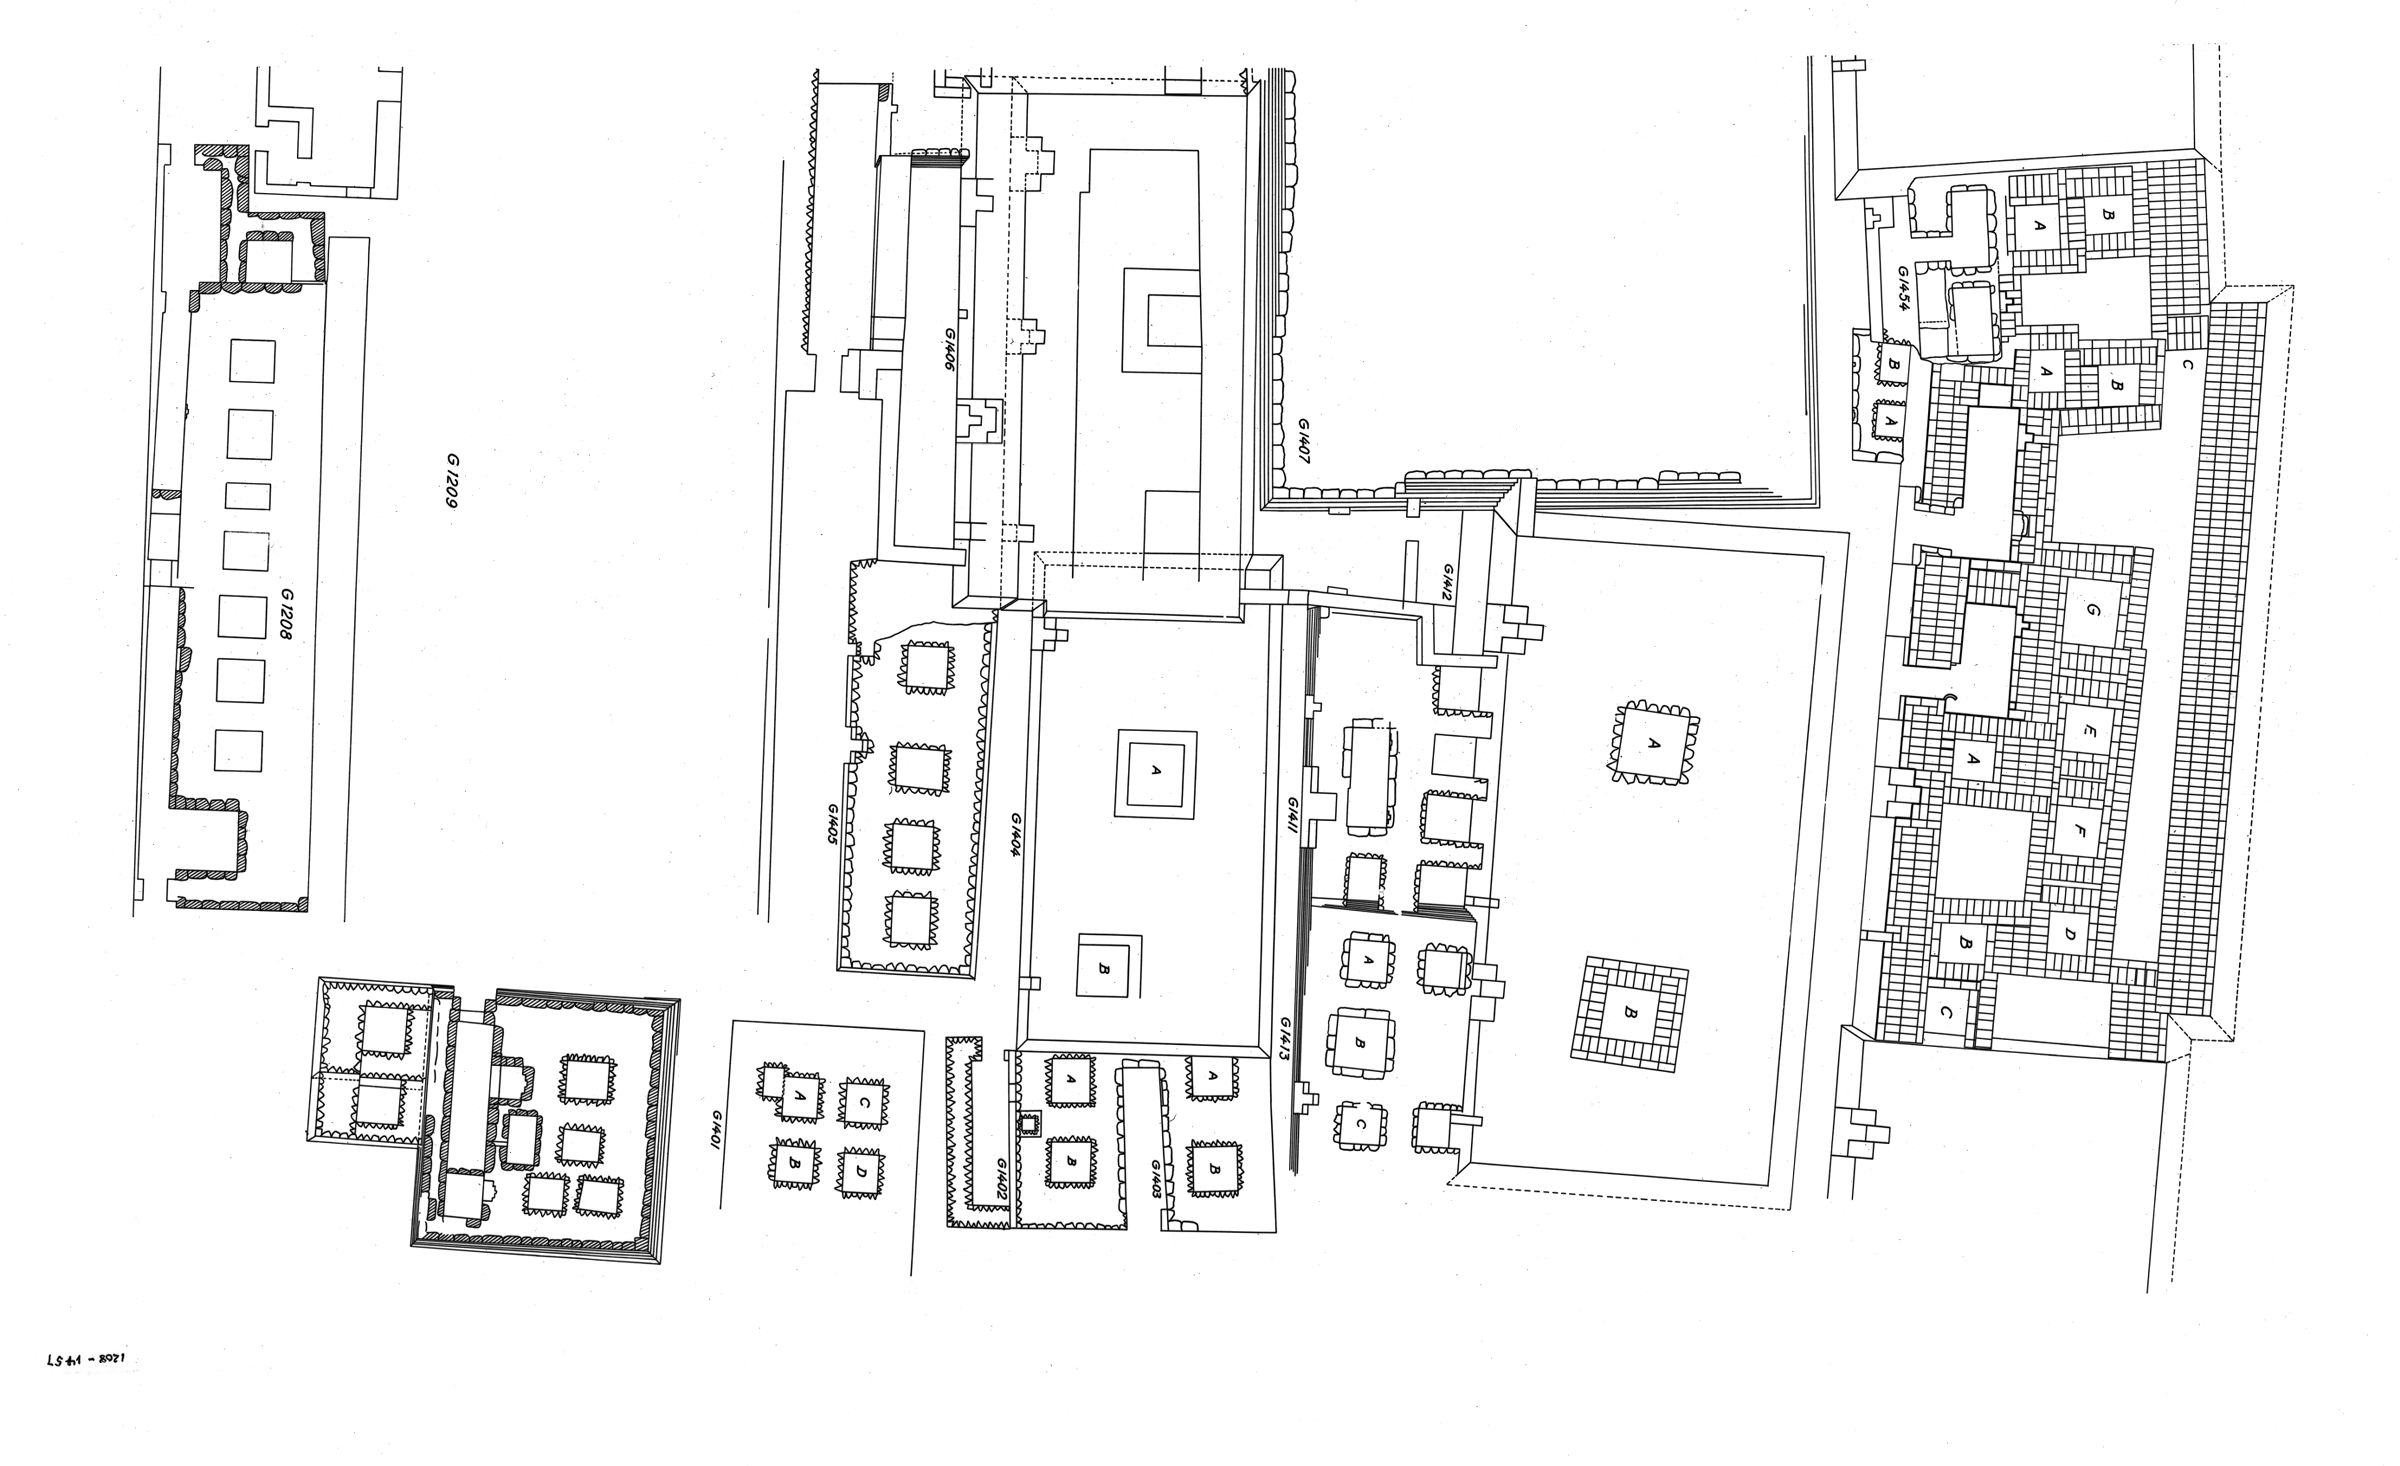 Maps and plans: Plan of cemetery 1400 (partial), G 1208 to G 1457